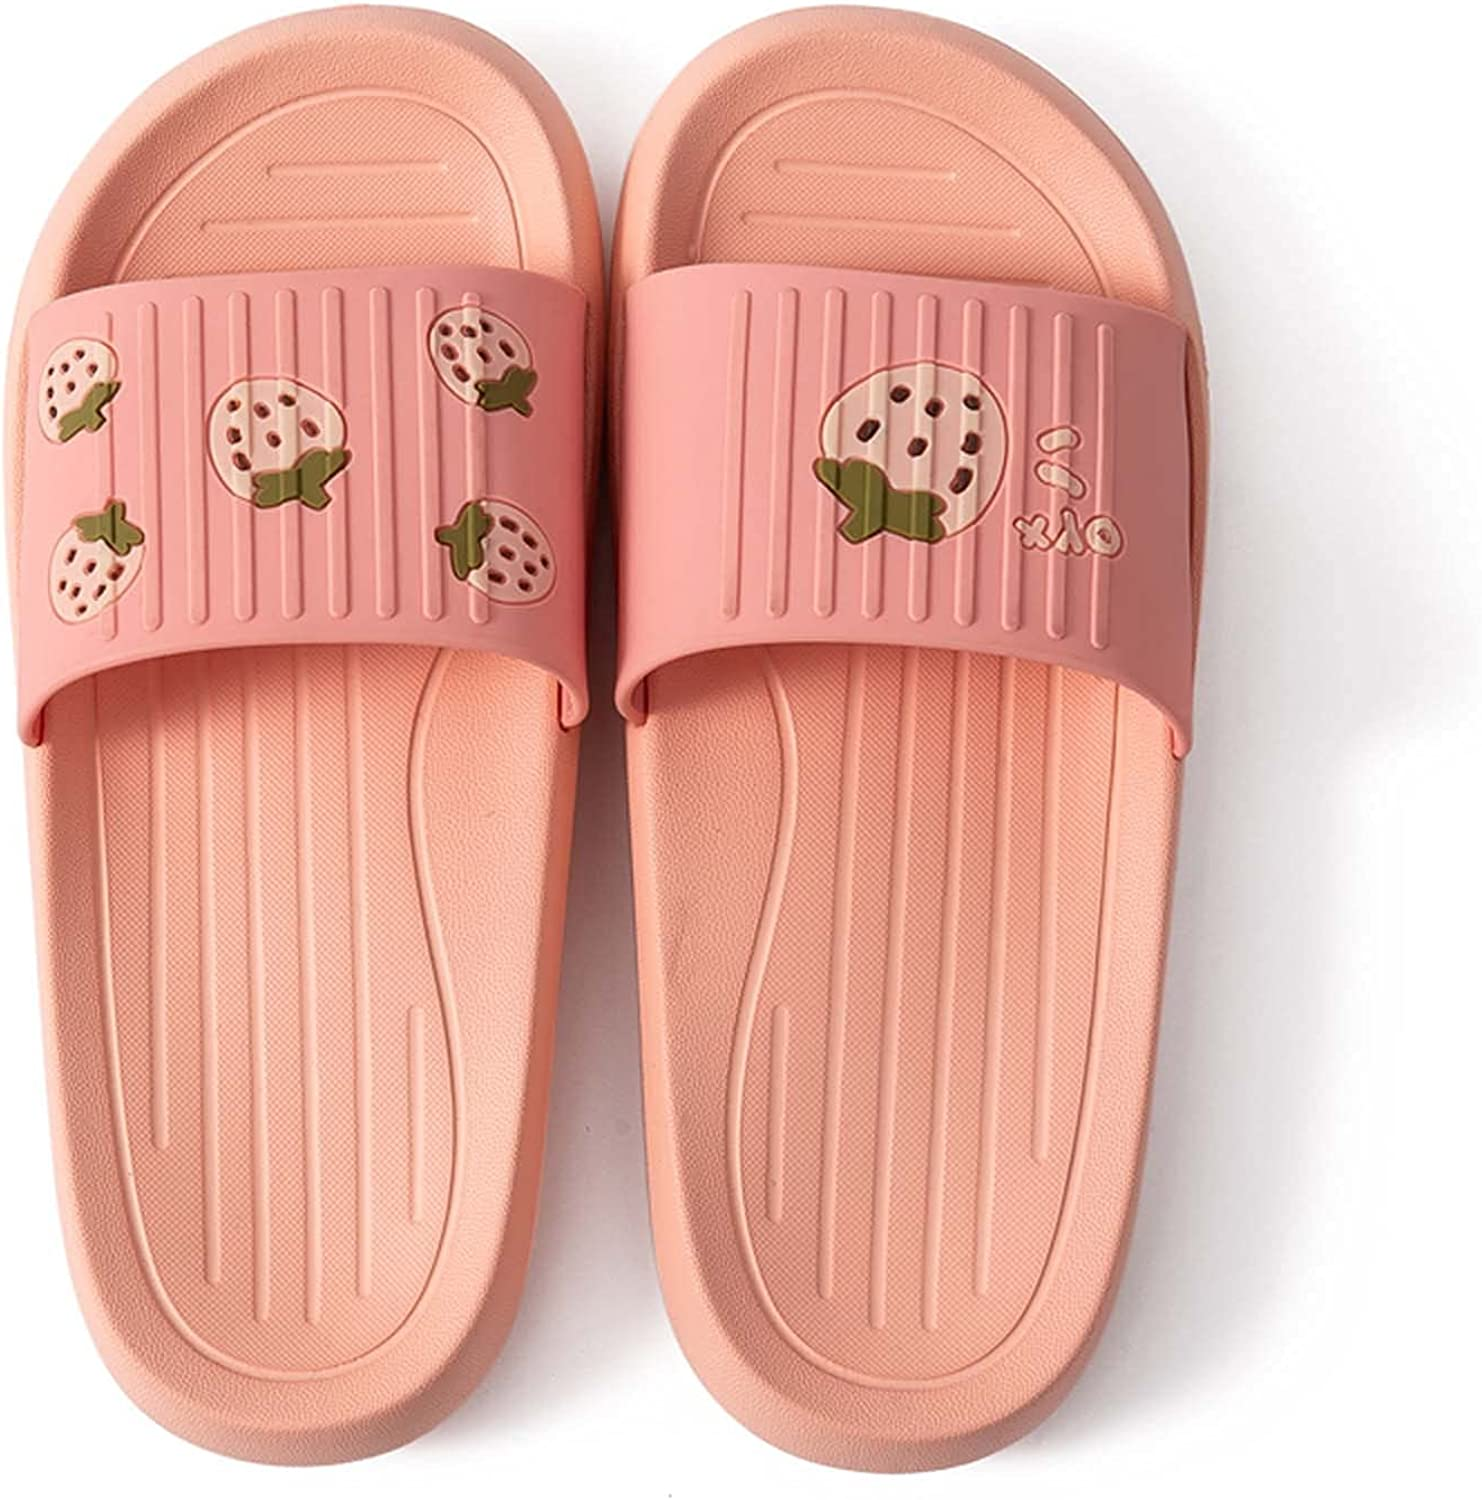 Kids Boys and Girls Max 76% OFF Sandals Max 73% OFF Slipp Home Fruit Indoor Cute